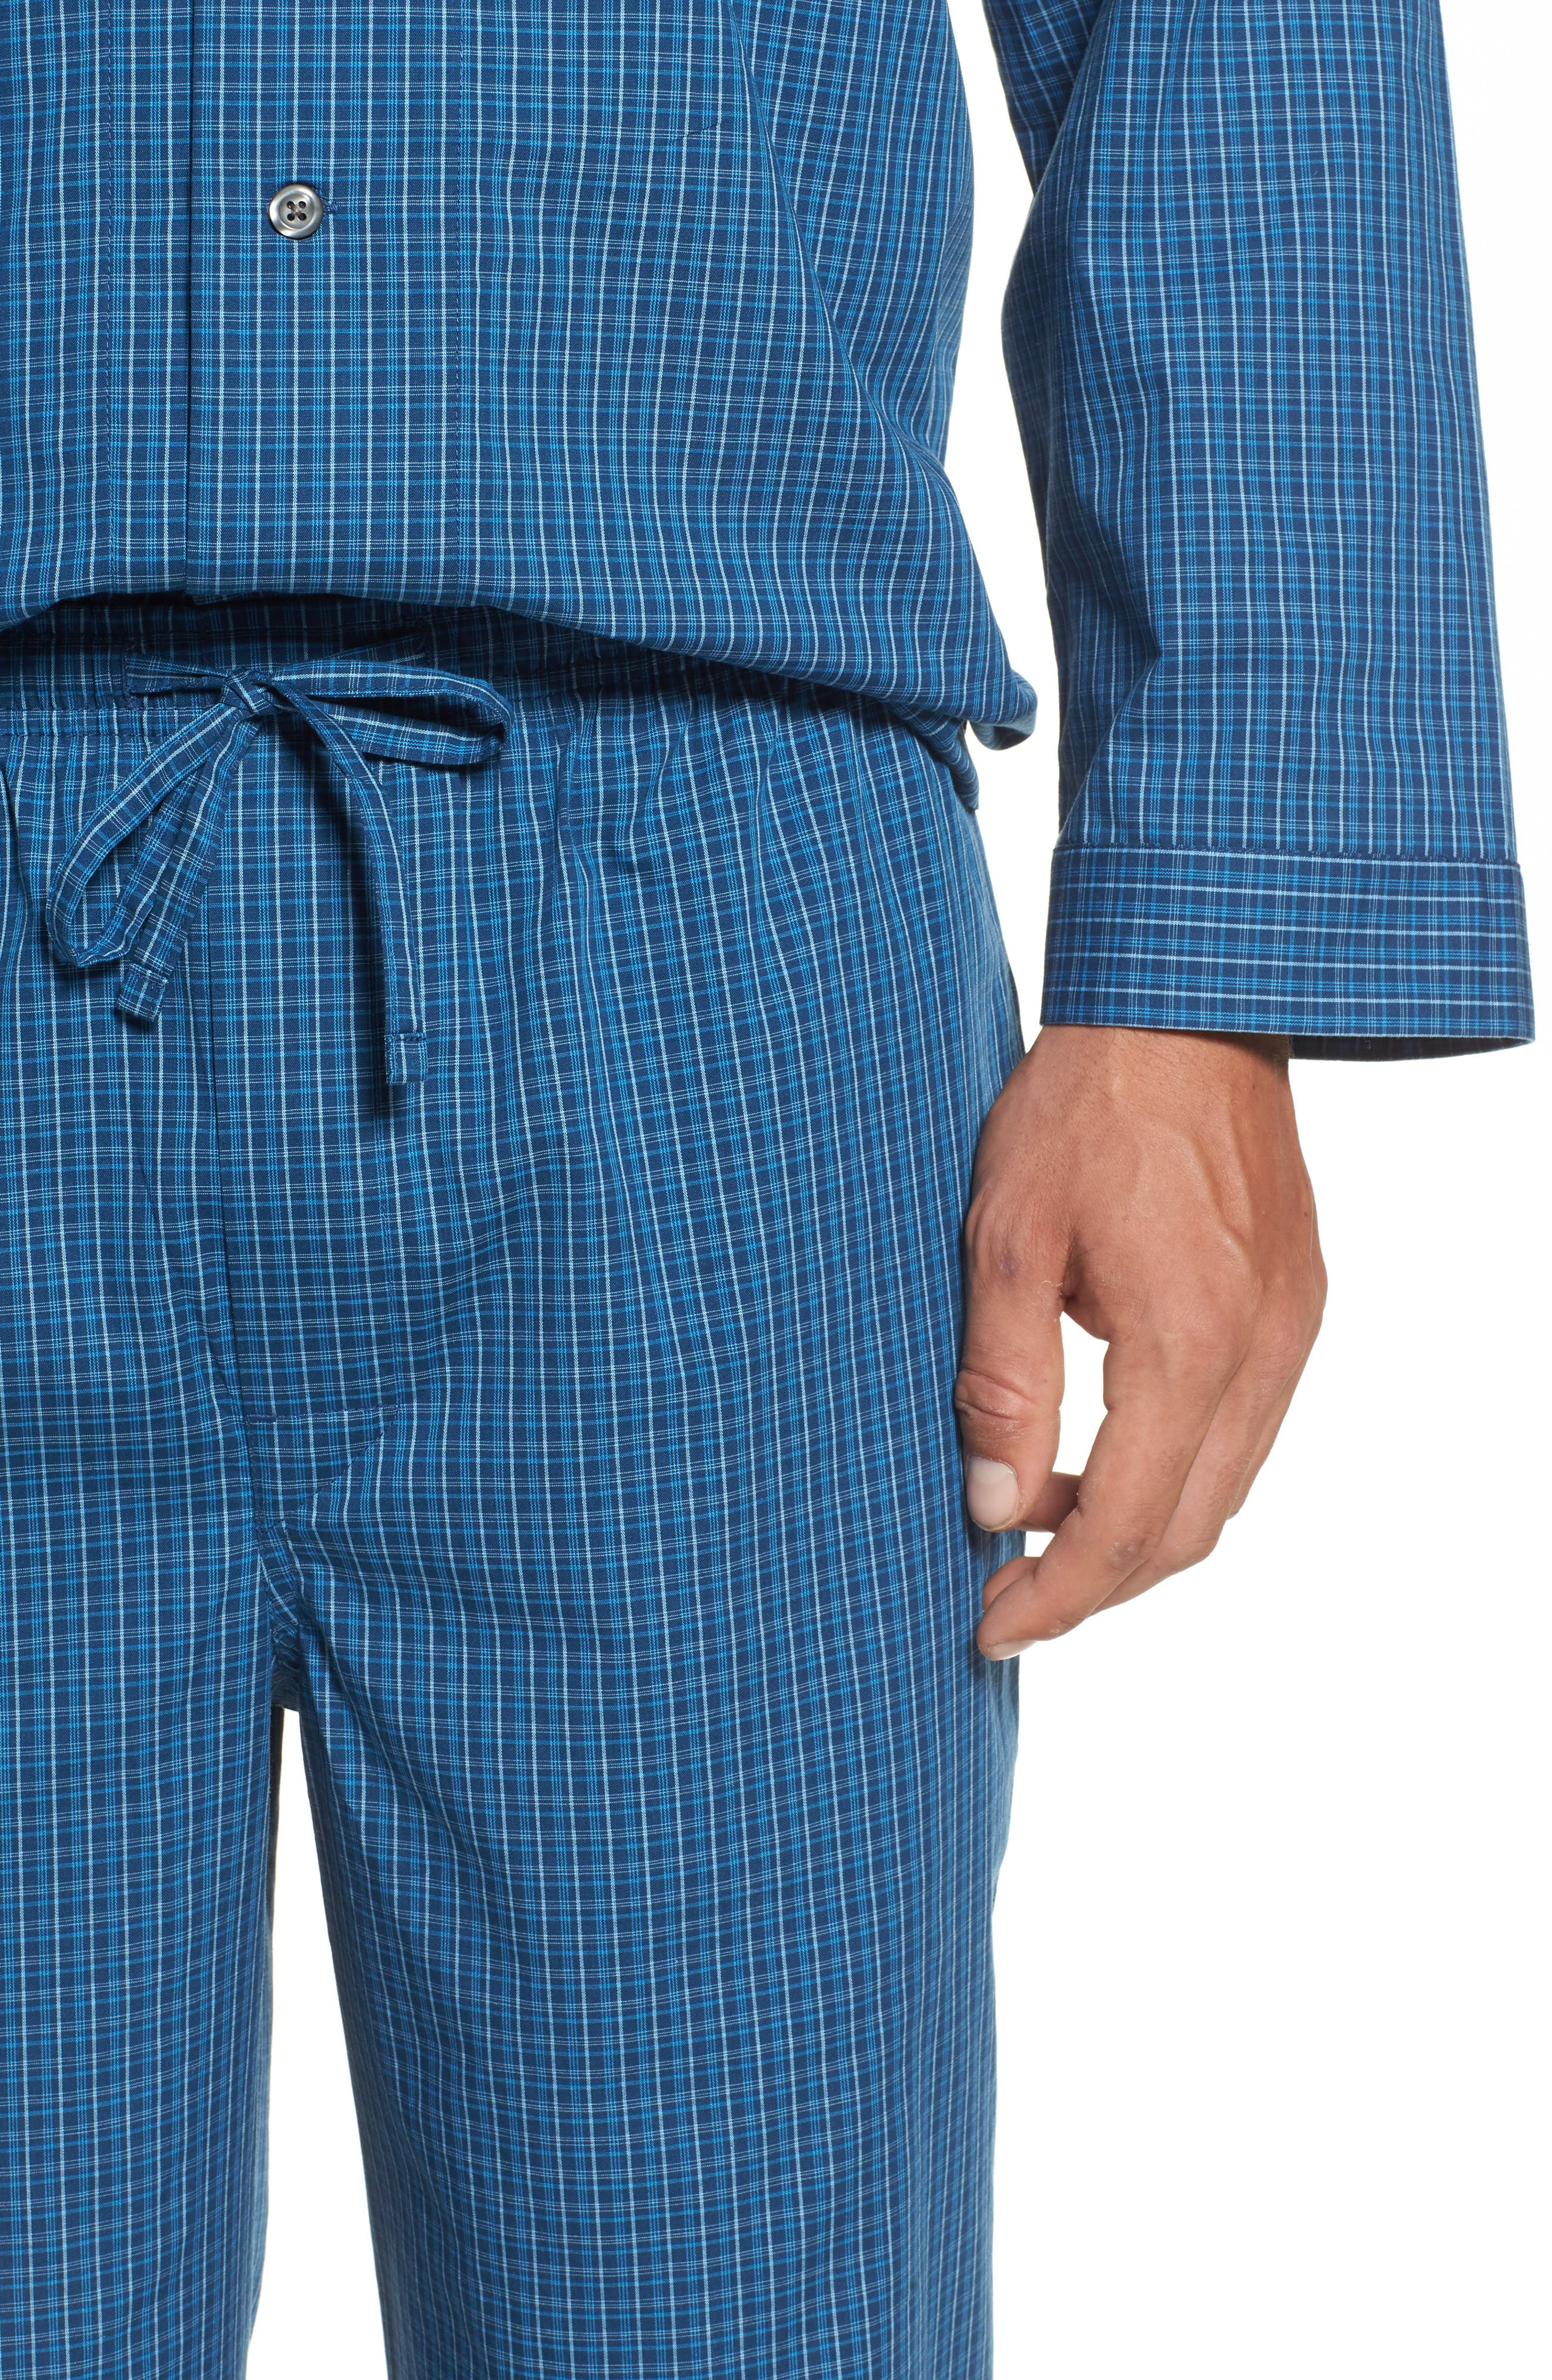 Poplin Pajama Set,                             Alternate thumbnail 4, color,                             Navy Medieval- Blue Plaid